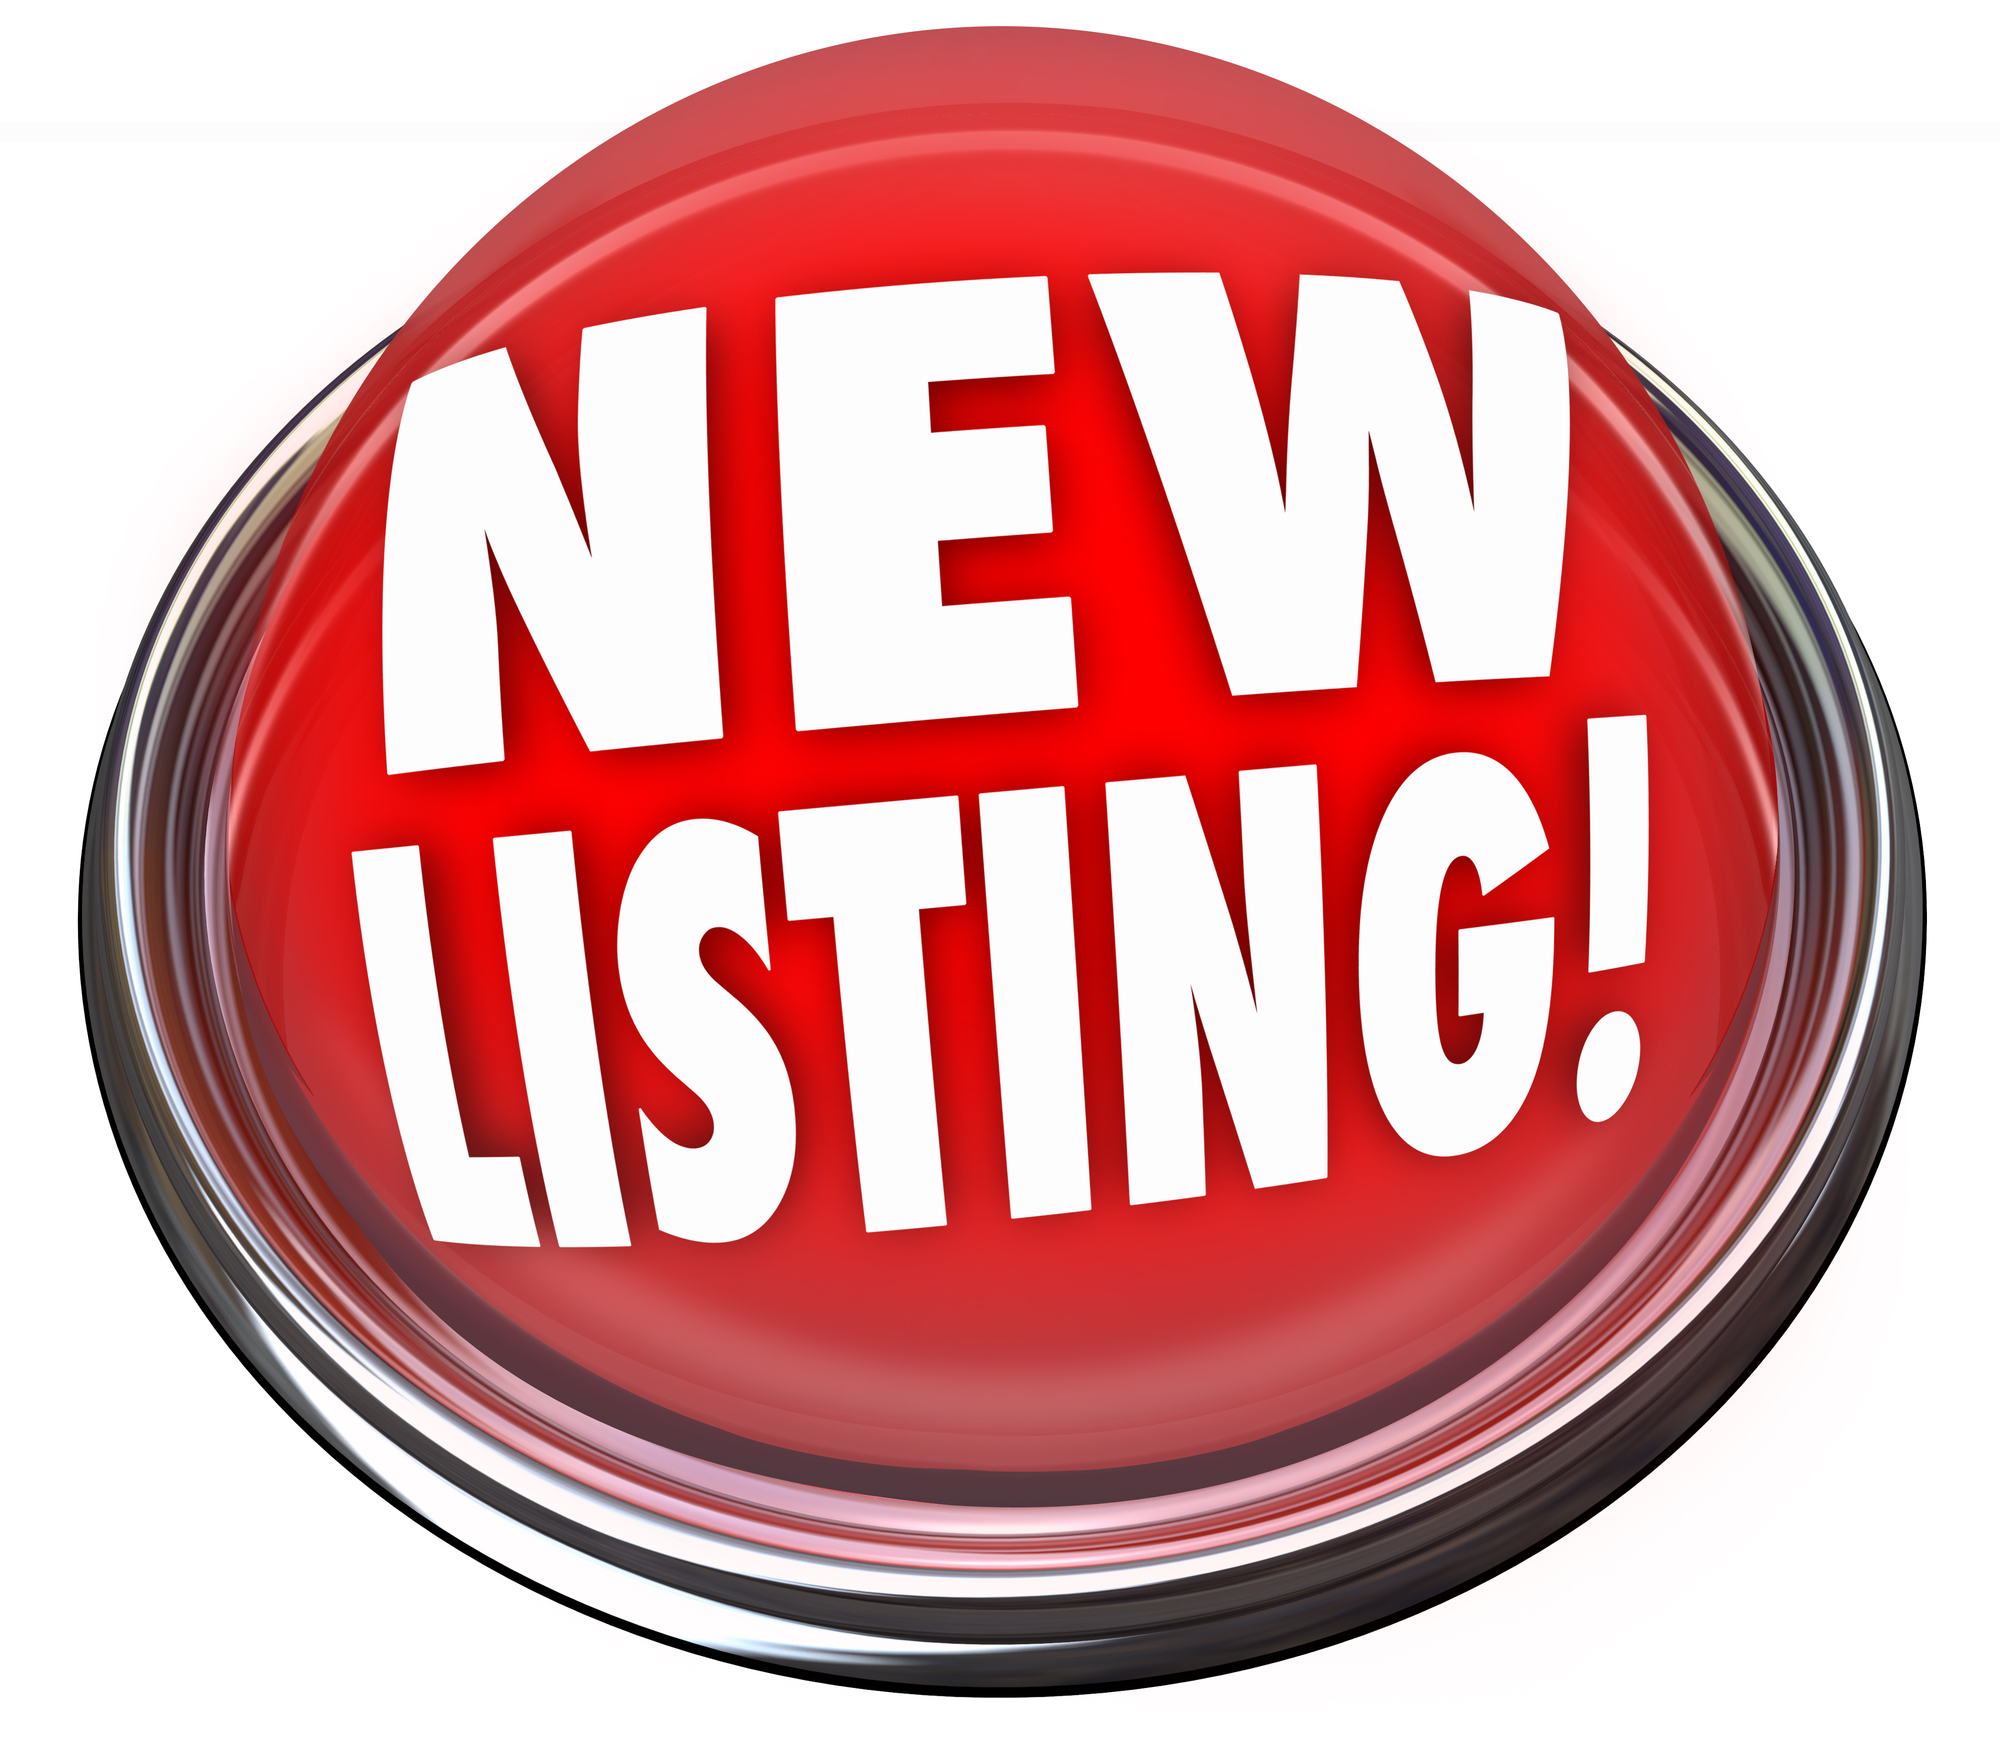 New Listing Button